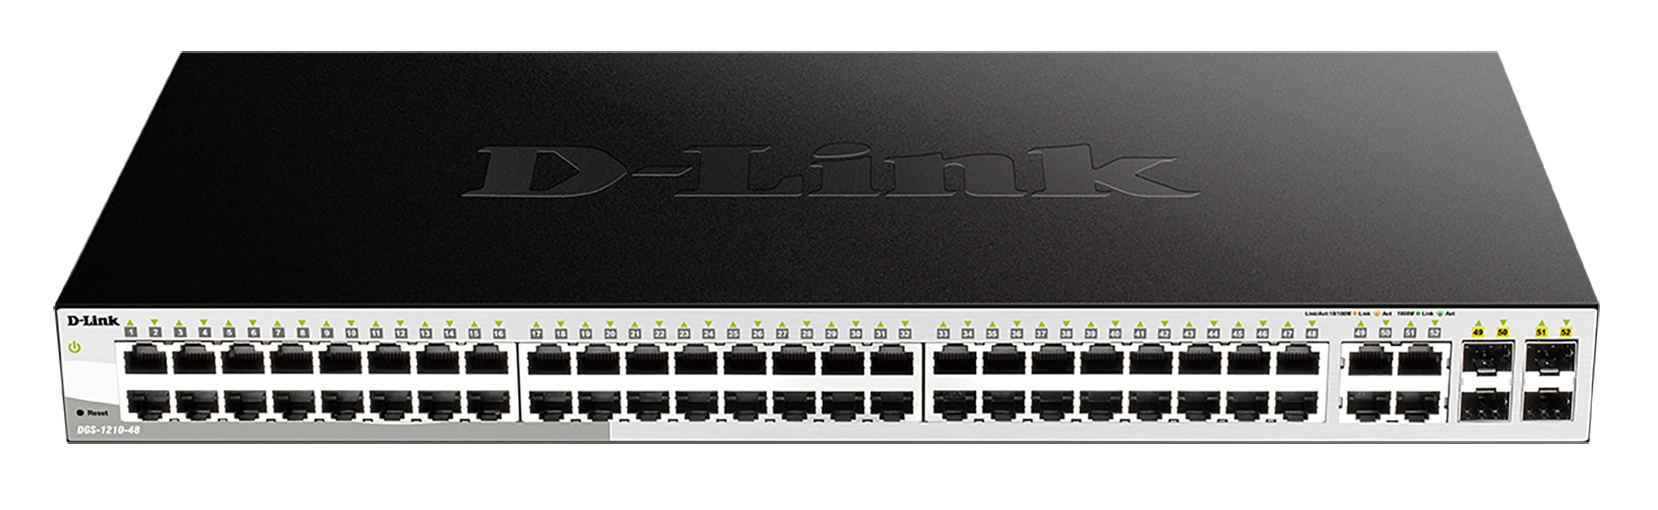 48-Port Gigabit Smart Managed Switch including 4 Combo 1000BASE-T/SFP ports (fanless)